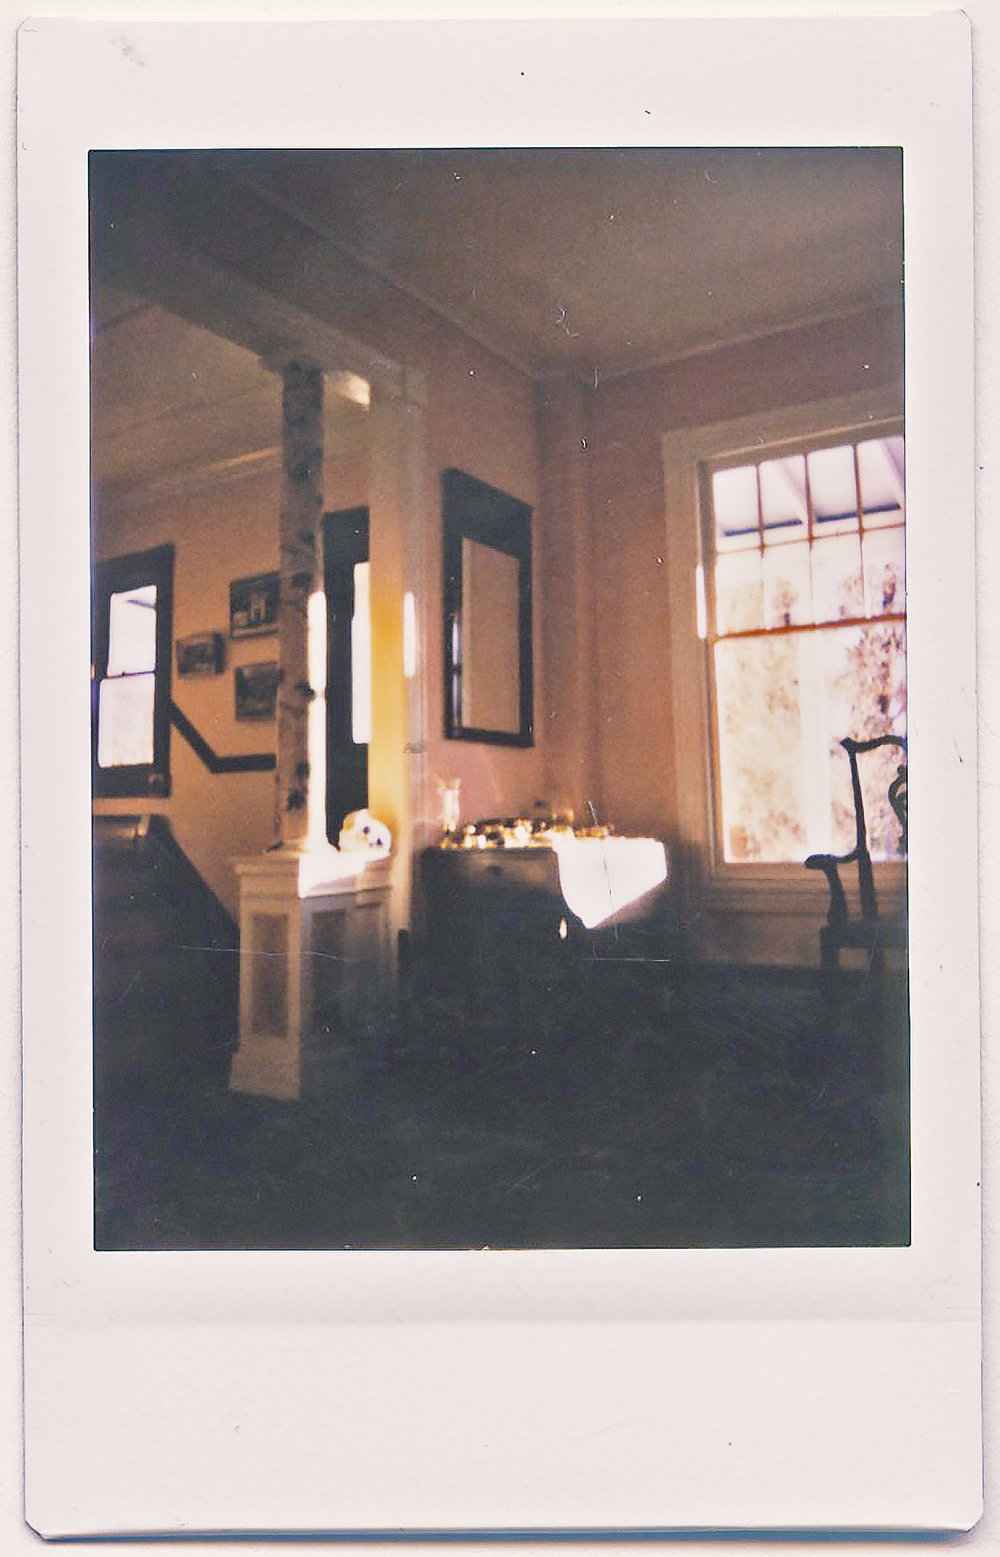 35 MM INSTAX - MILLERTON, NY - HUDSON VALLEY - WINTER 2017